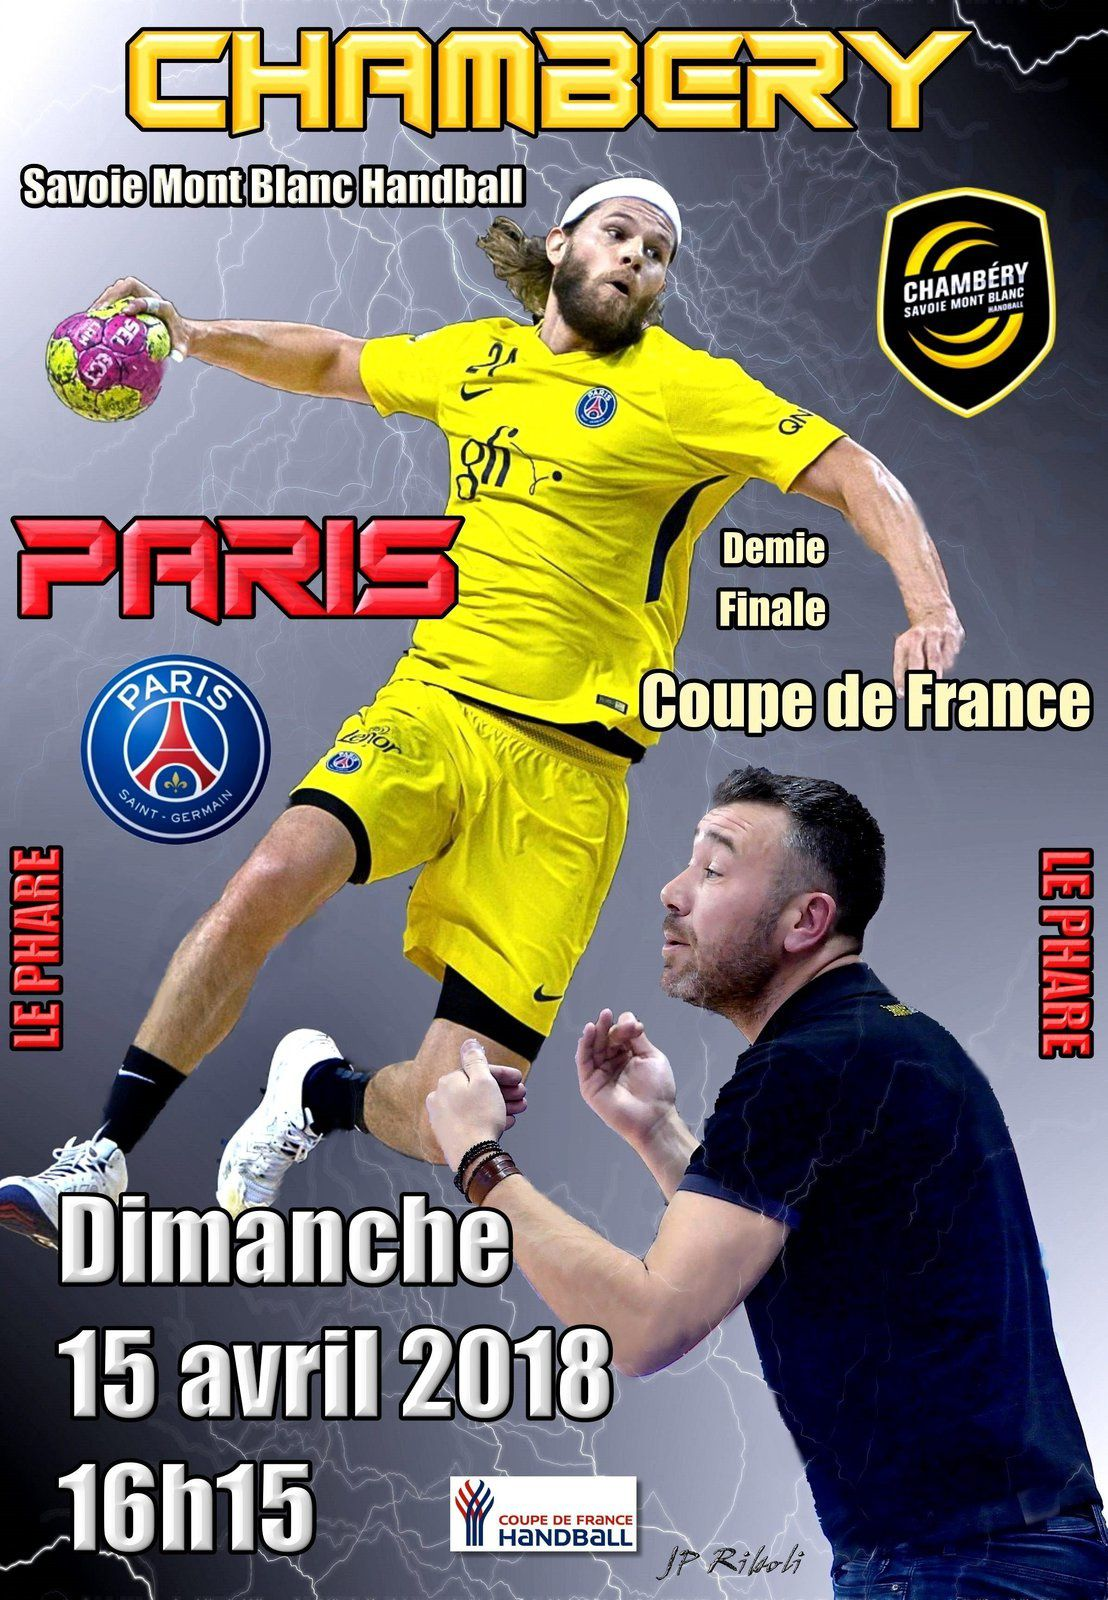 Article DL N1 CHAMBERY2 - MARTIGUES du 01 avril 2018